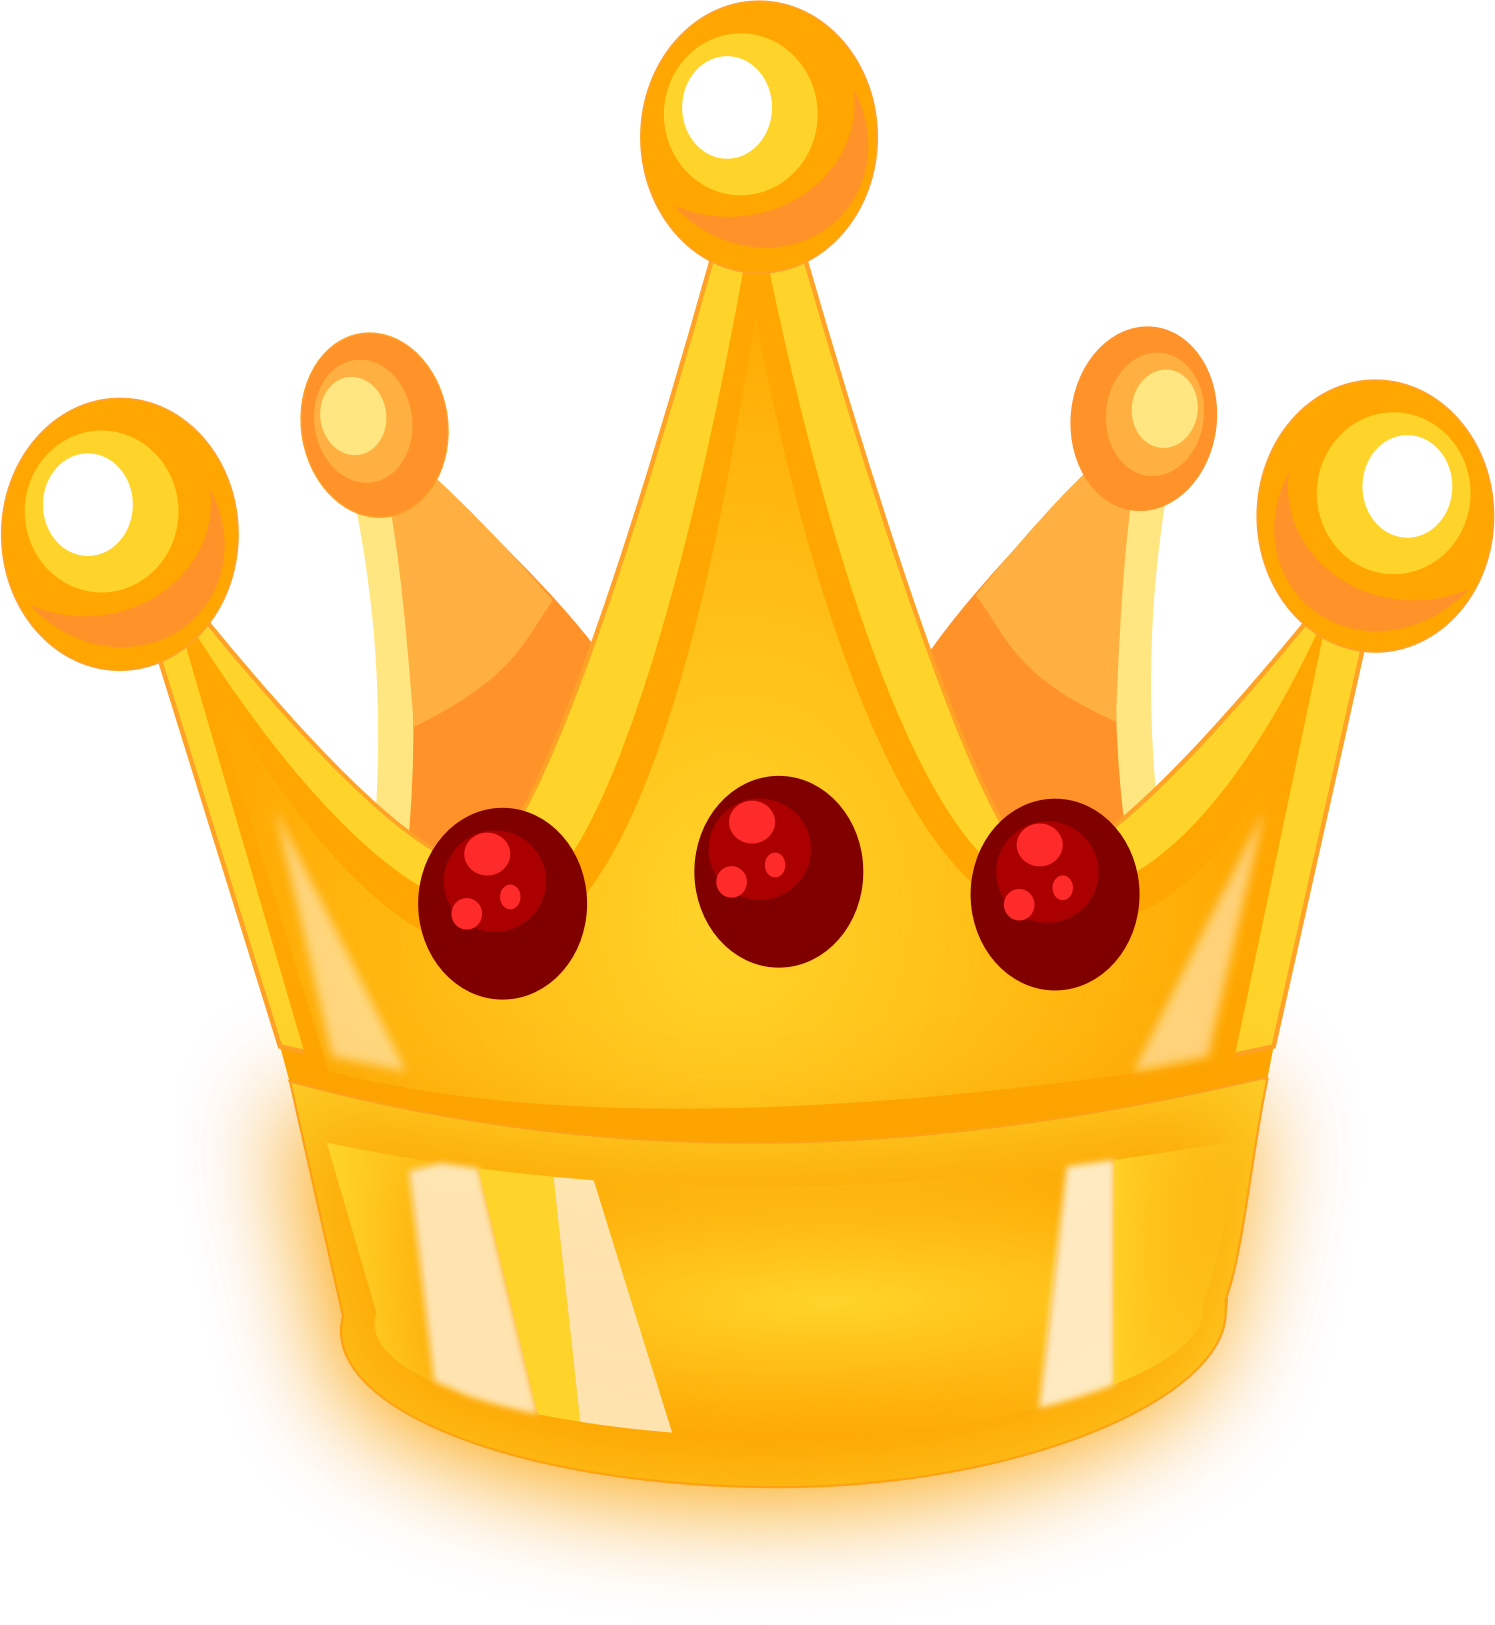 Gold bling crown clipart banner royalty free stock Clipart - Royal Crown with no background banner royalty free stock